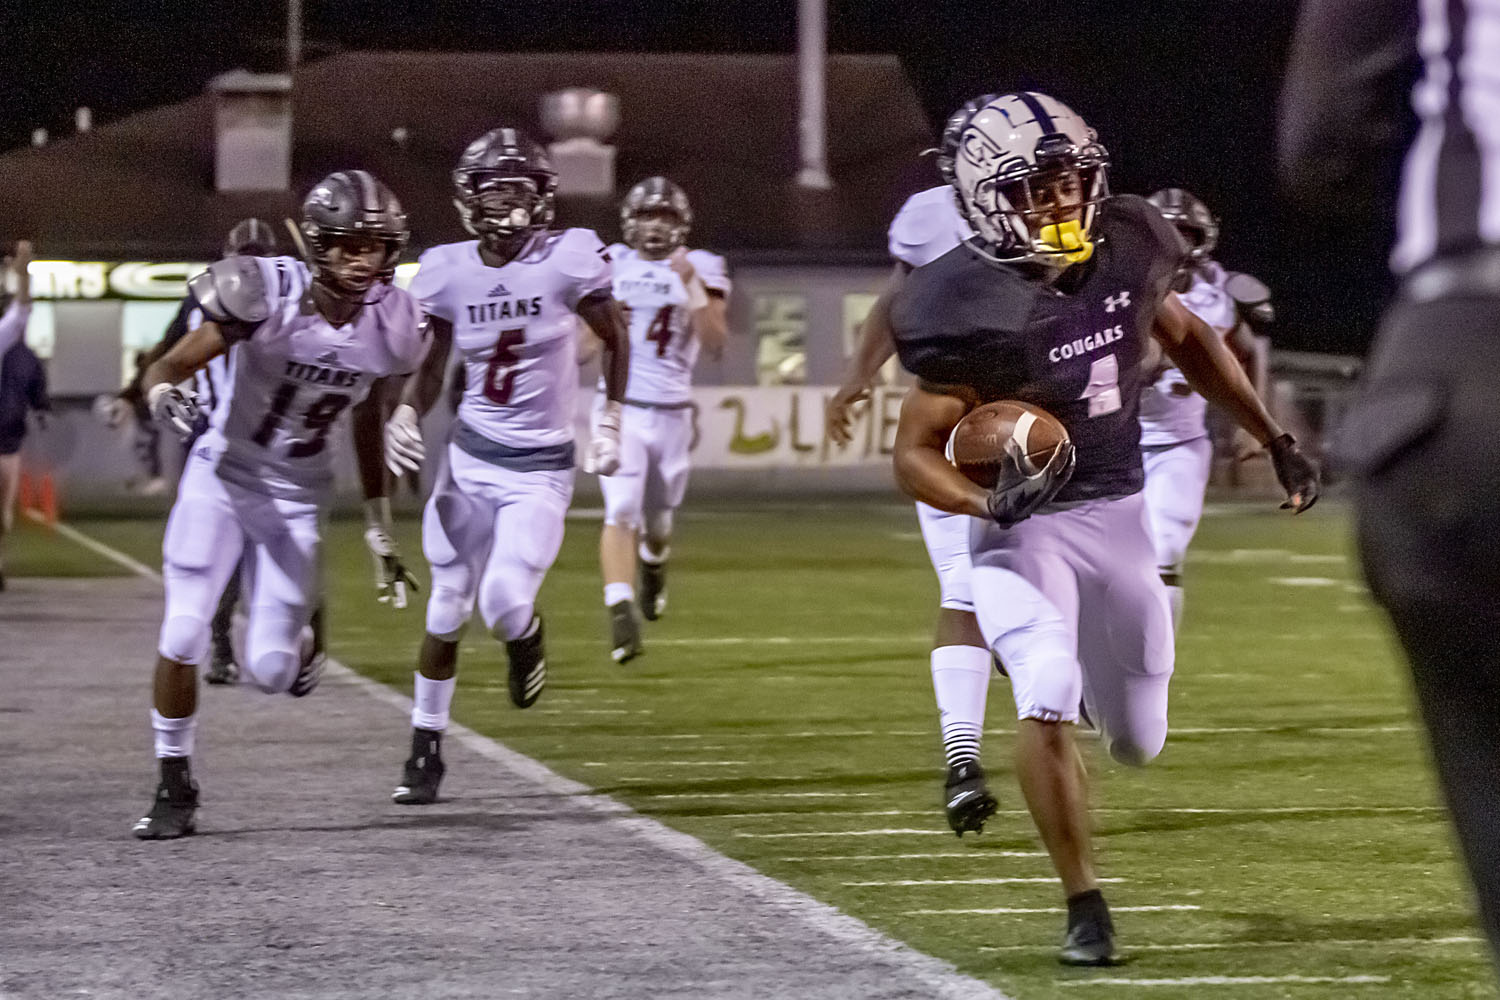 Clay-Chalkville season opener to be 1 of 9 games with instant replay